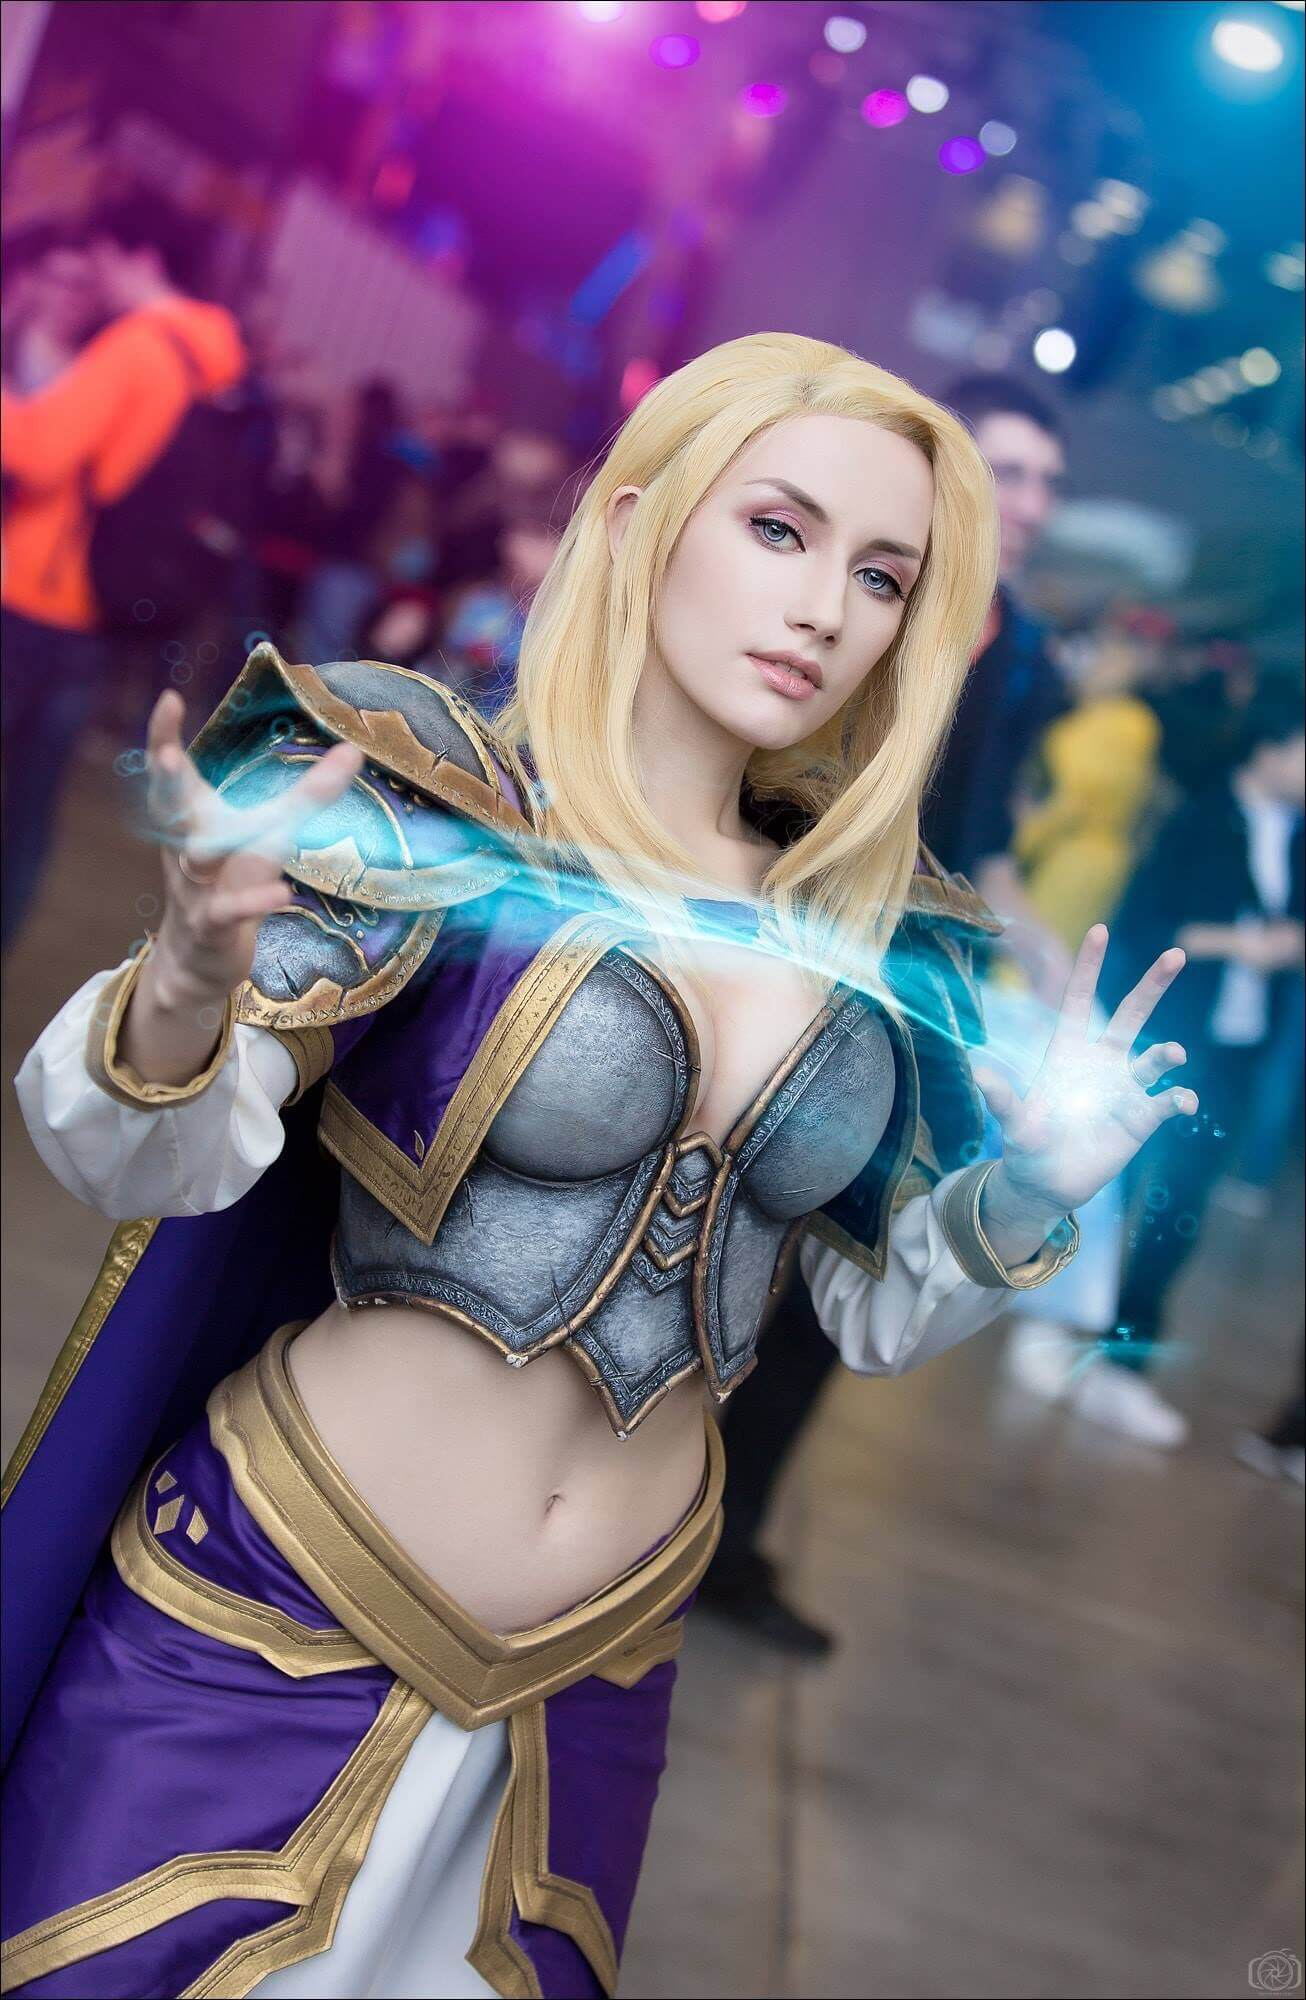 Jaina hot cleavages '